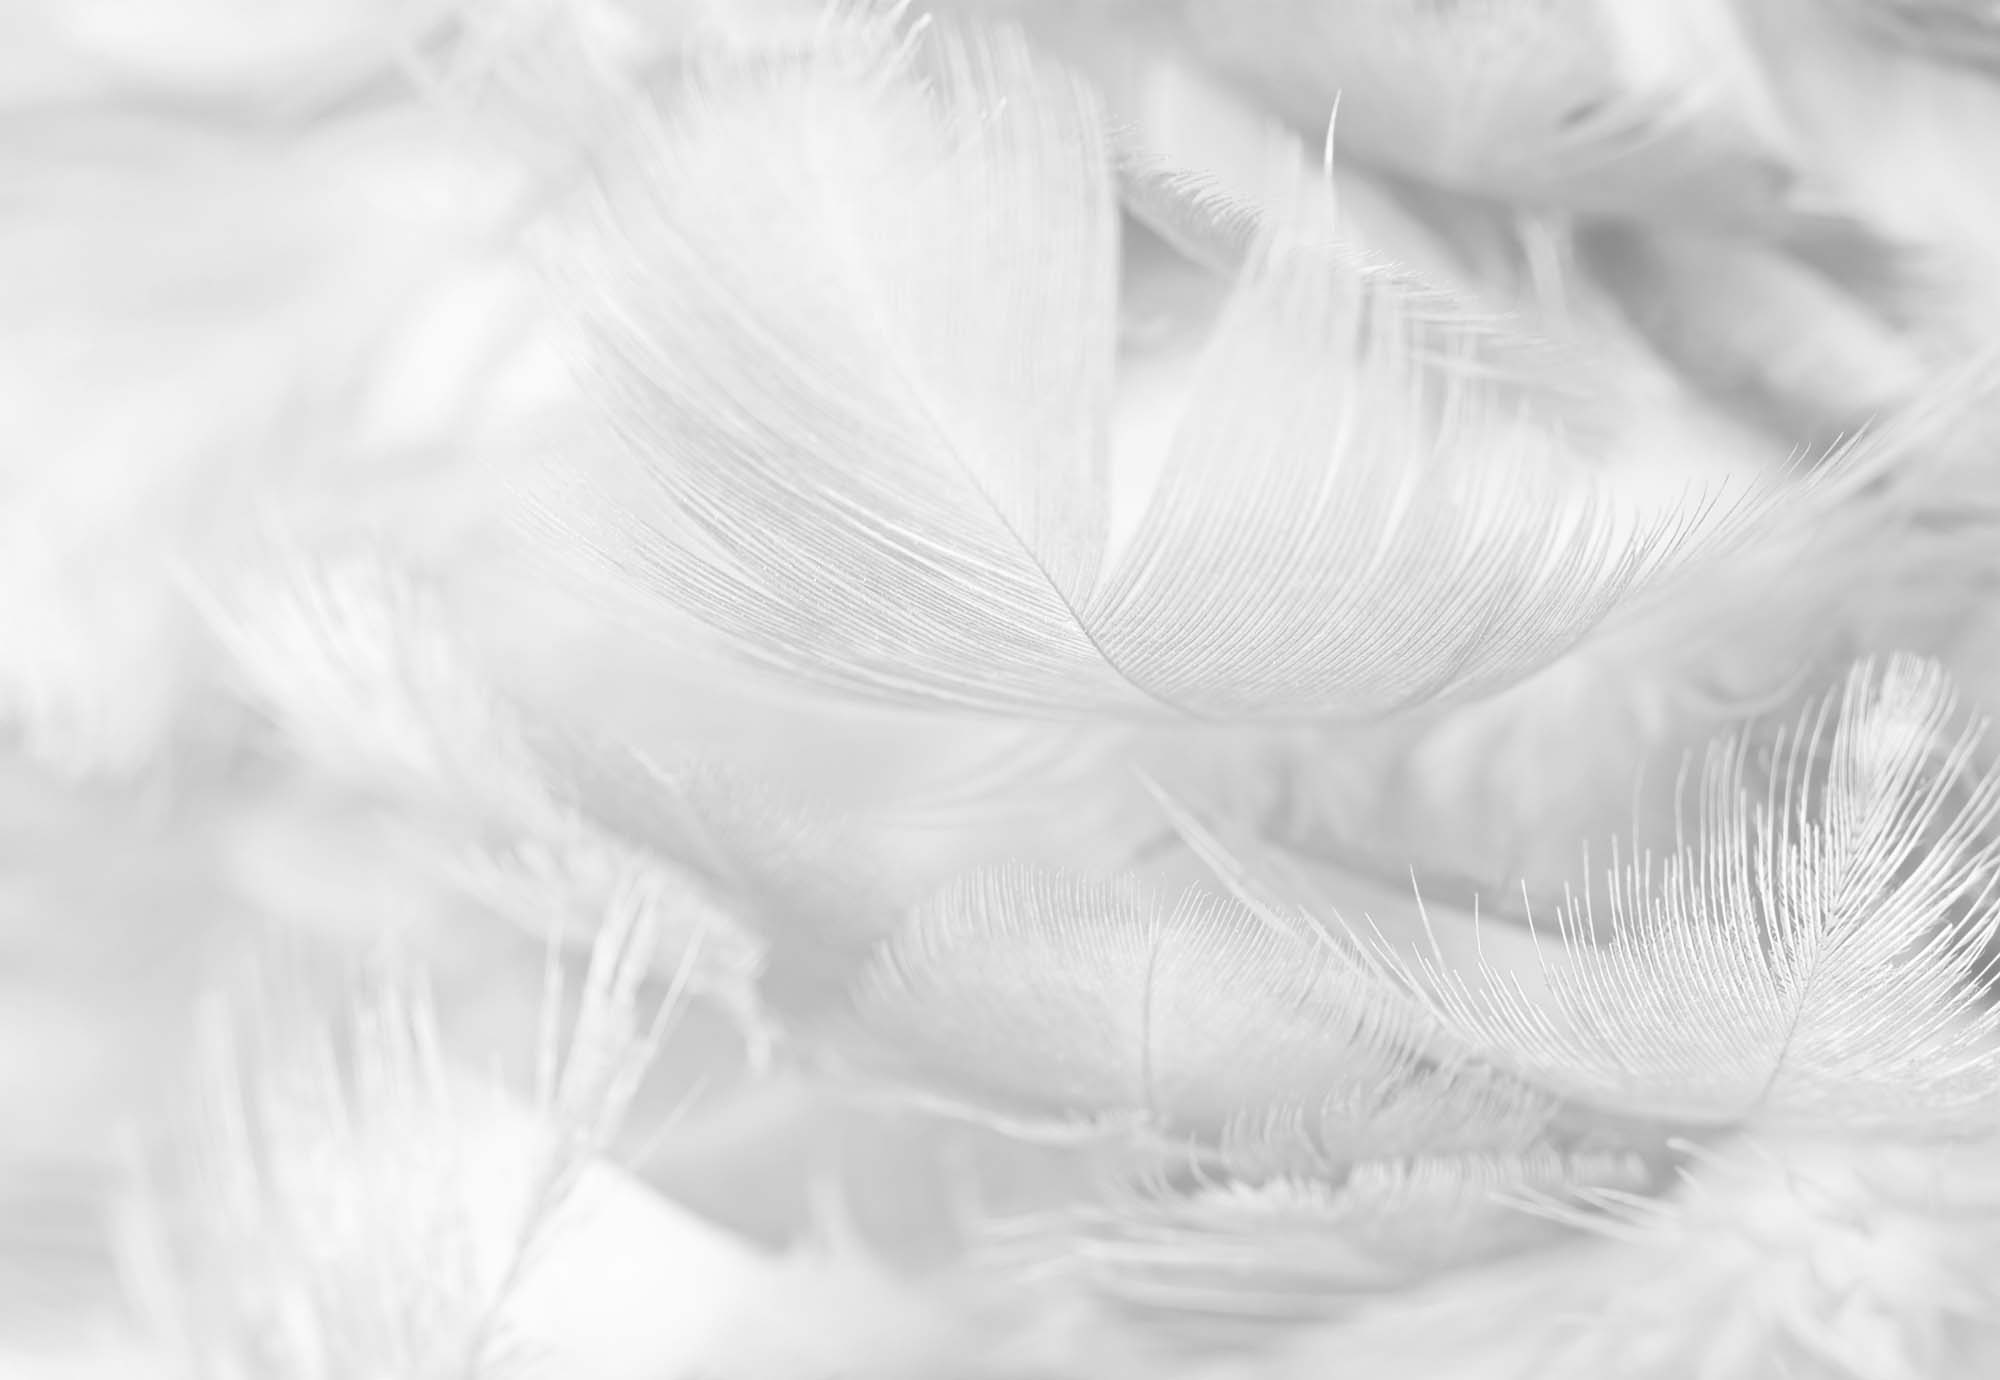 Fotobehang Feathers in Black/White